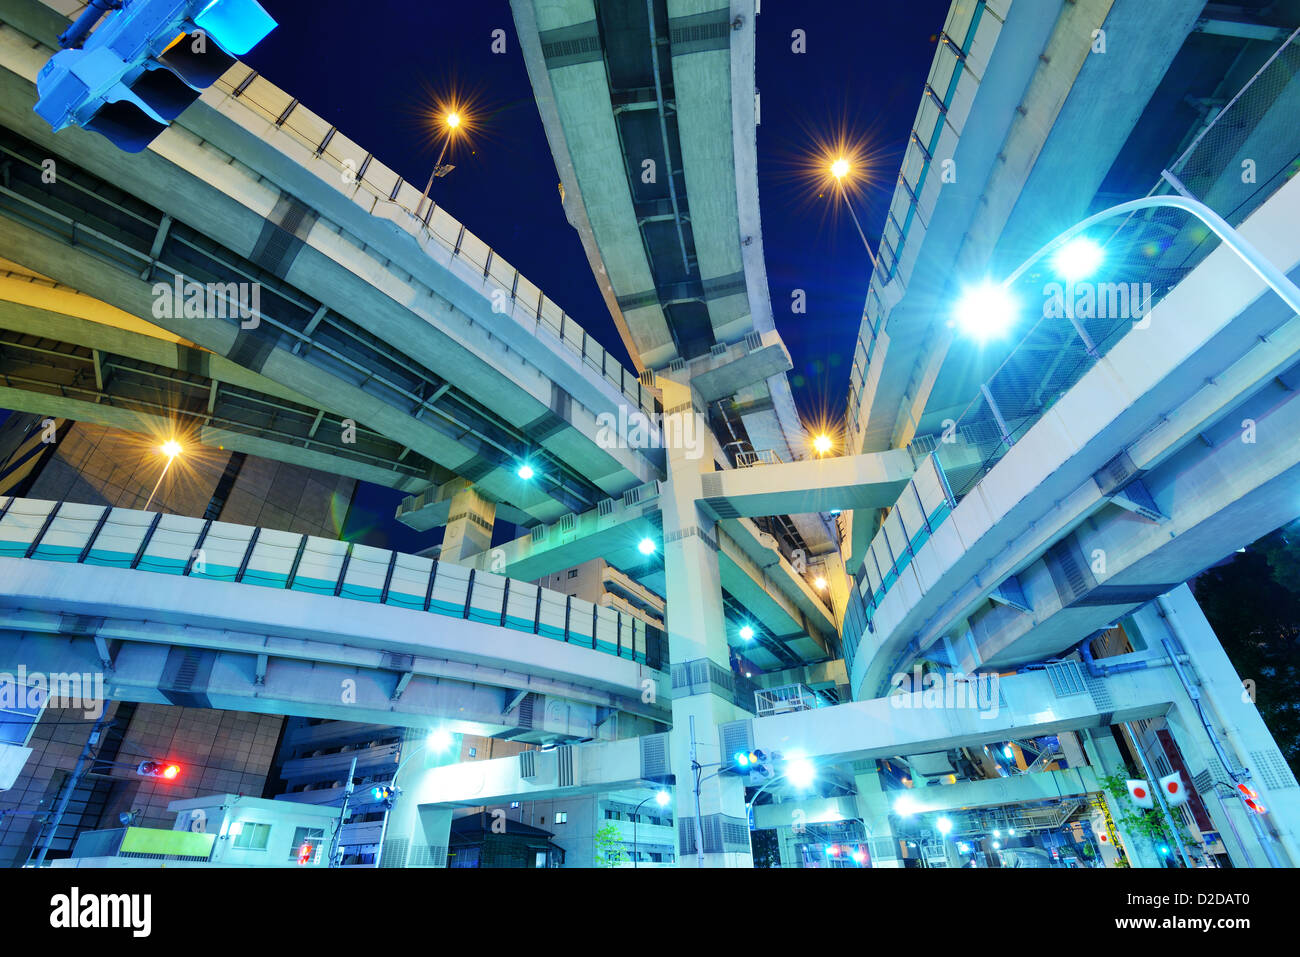 Junction of several highways in Tokyo, Japan. - Stock Image